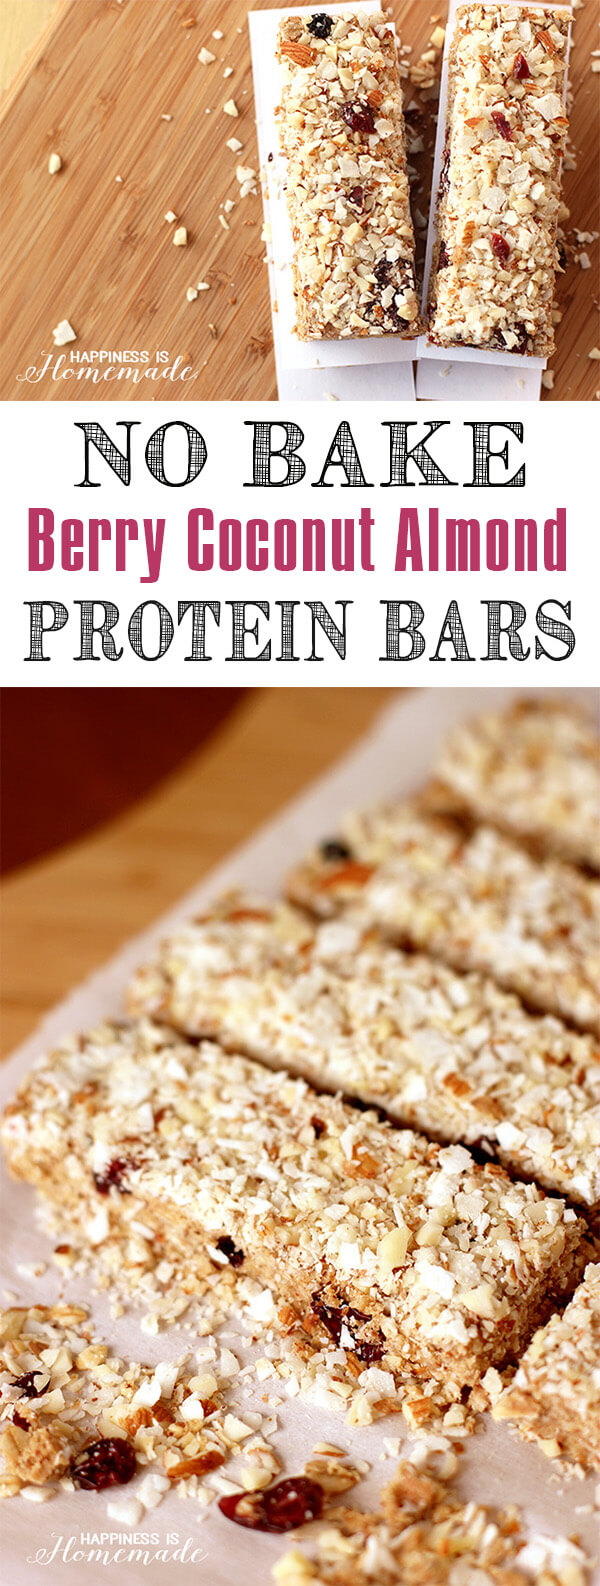 No-Bake Berry Coconut Almond Protein Bars - Happiness is Homemade